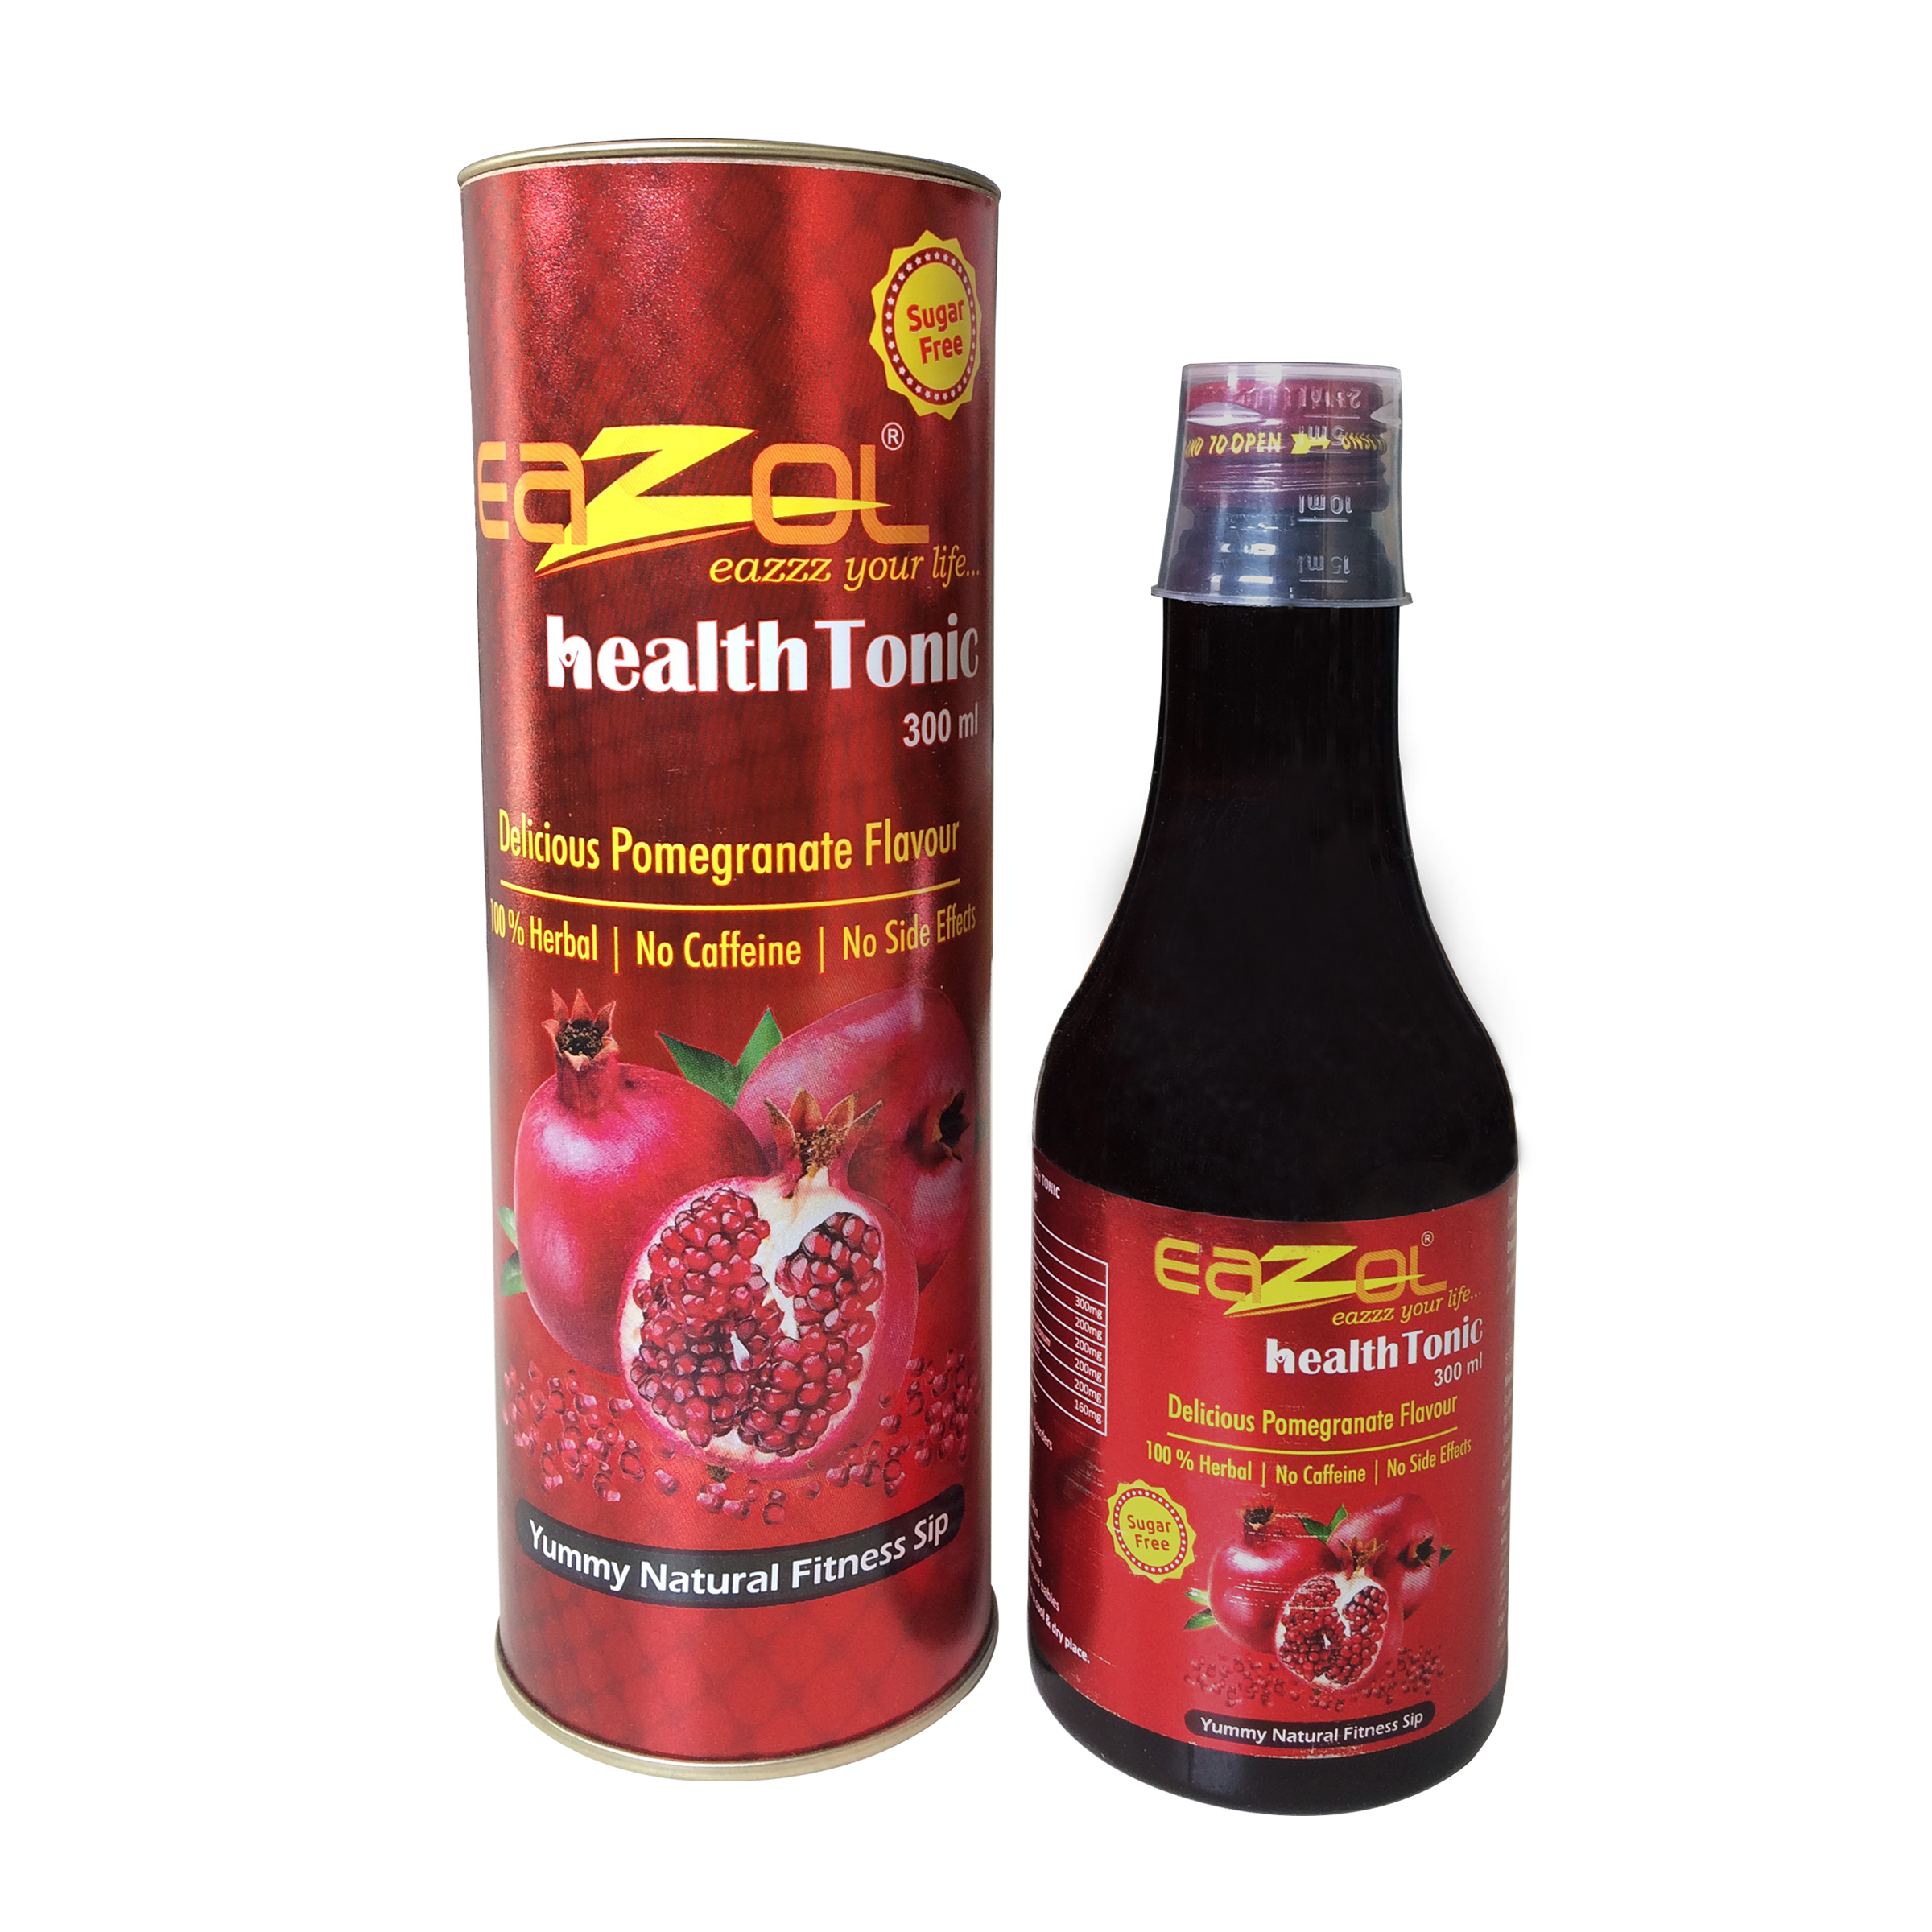 Eazol Health Tonic Excellent Products For Diabetic Patients And